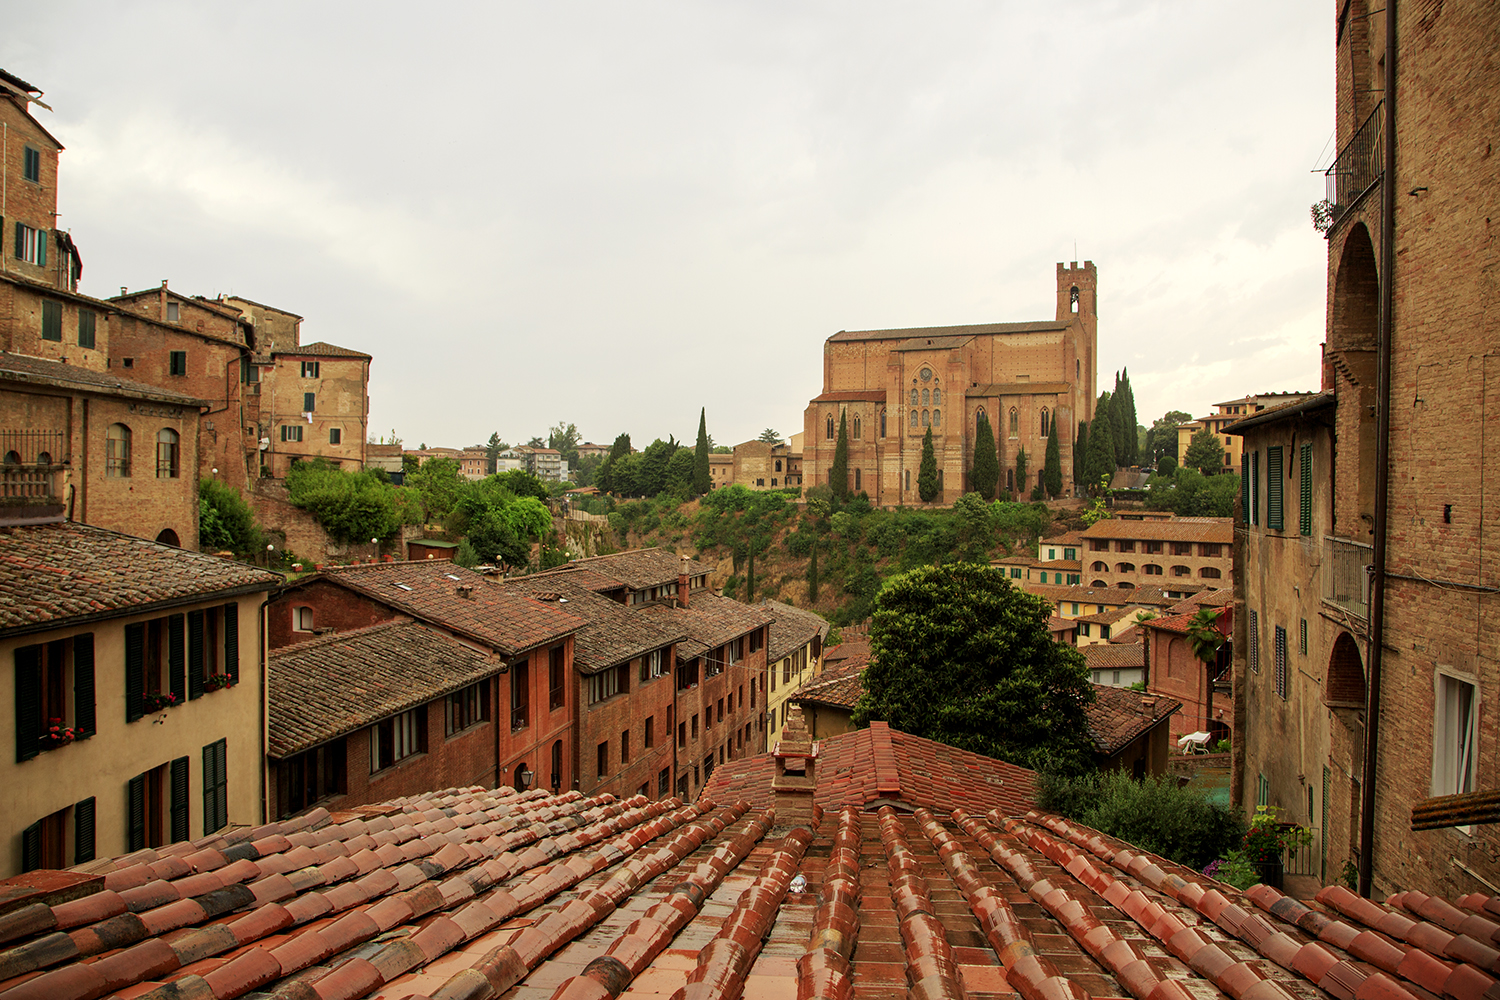 Suffusing My Senses In Siena - Image 4